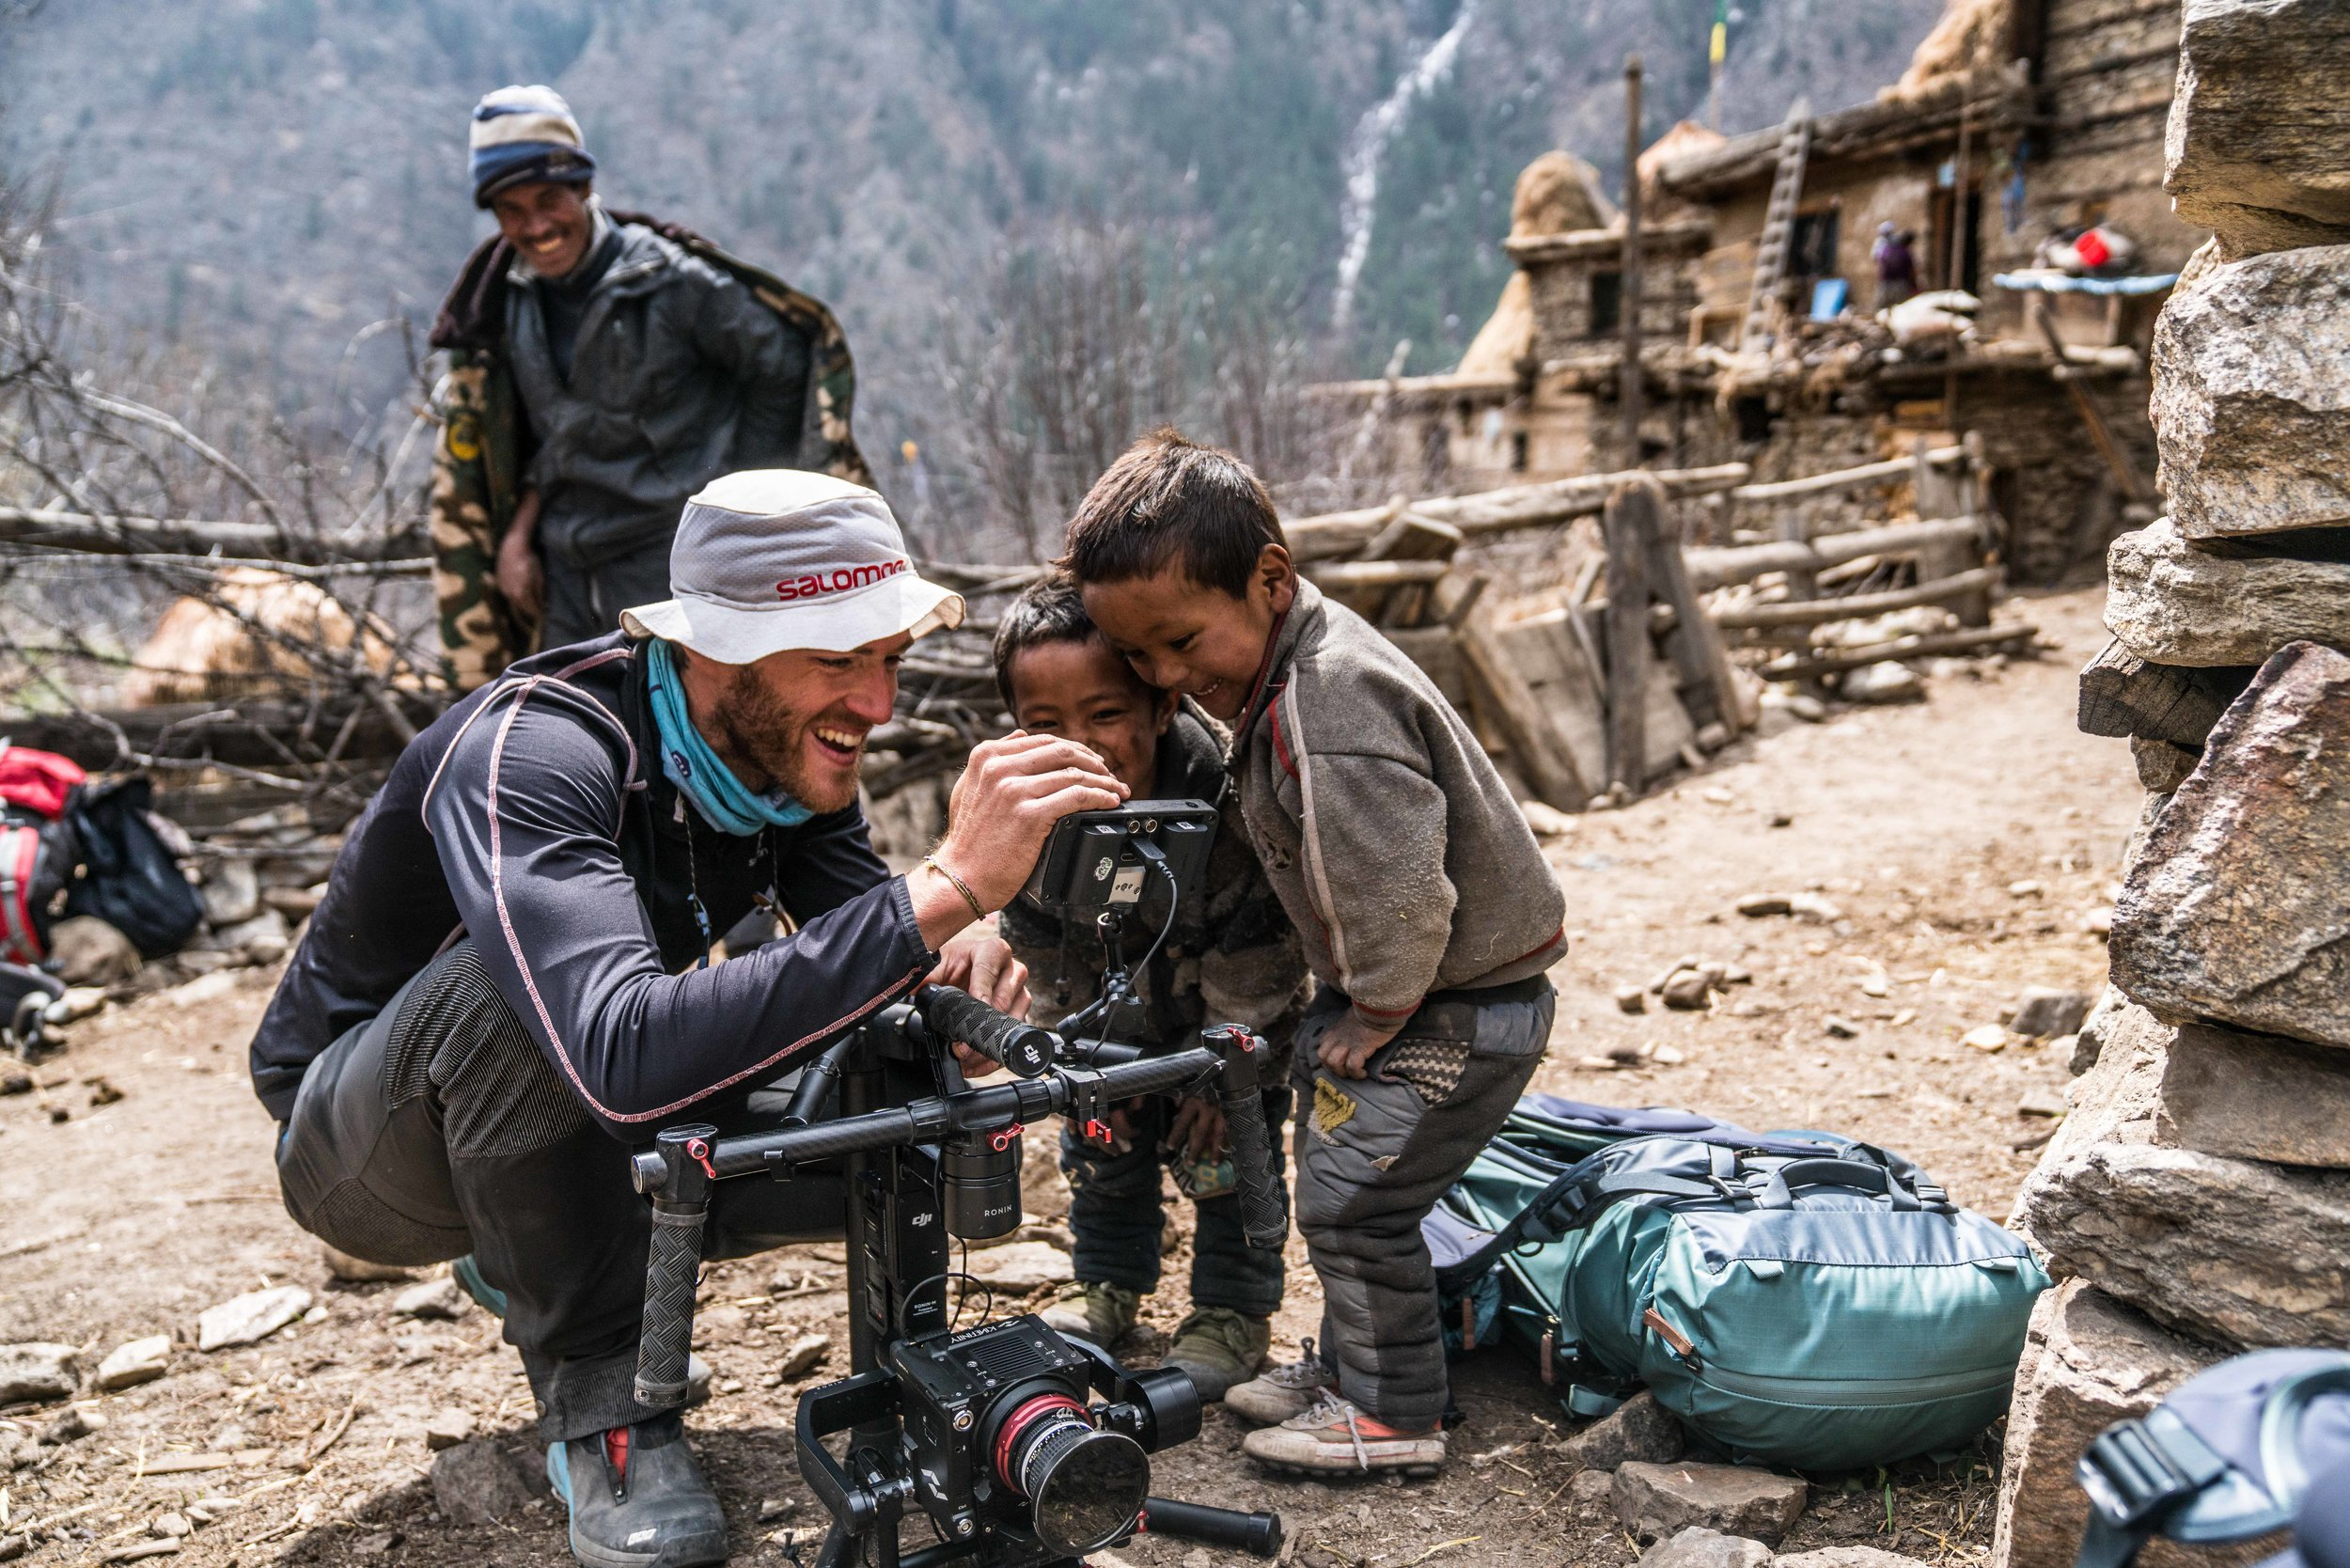 - Filming these adventures has taken him to over 25 countries in his time while working under filmmaker Dean Leslie, founder of the  production company Wandering Fever and the web series SalomonTV.